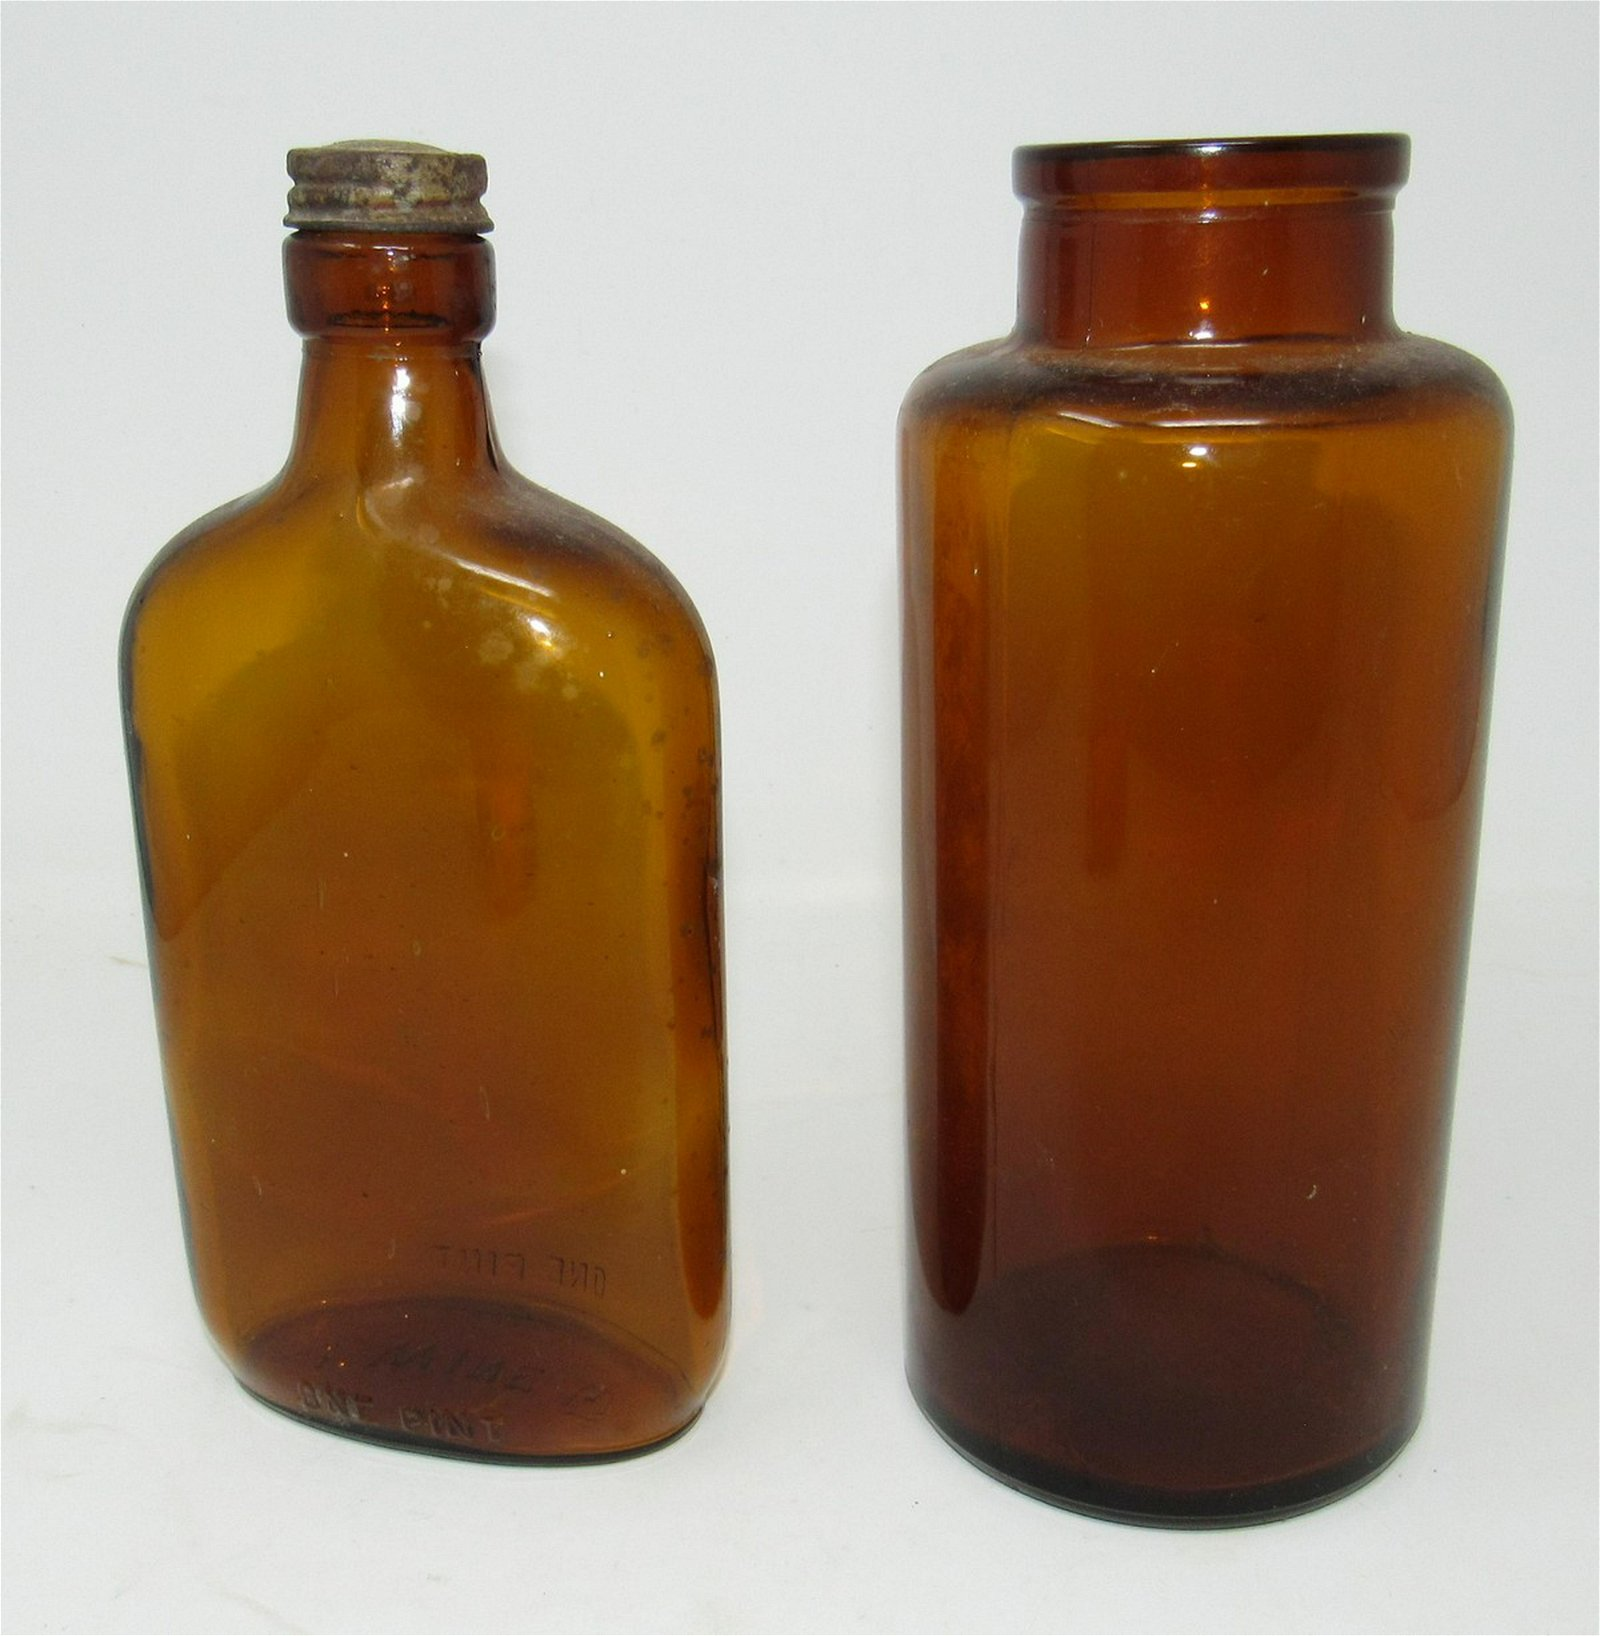 Amber Glass Jar and Bottle